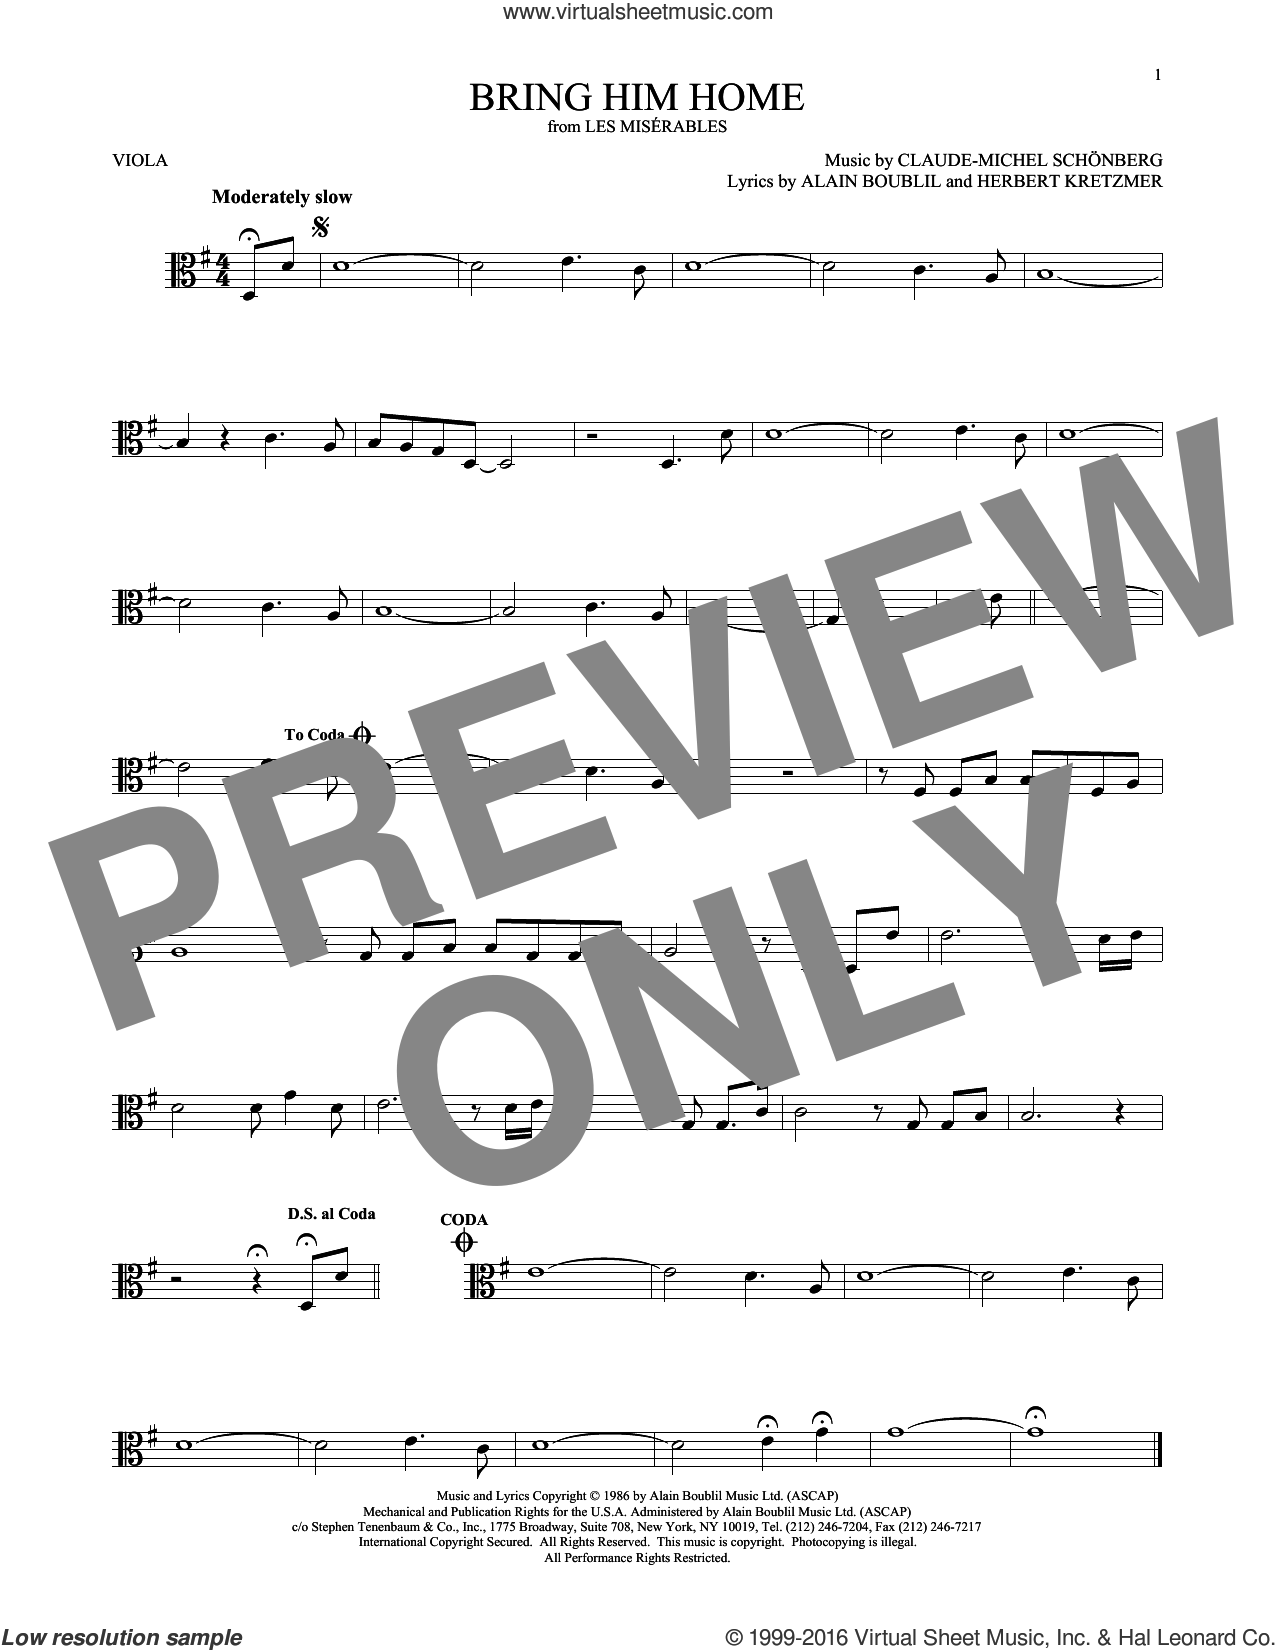 Bring Him Home sheet music for viola solo by Alain Boublil, Claude-Michel Schonberg and Herbert Kretzmer. Score Image Preview.